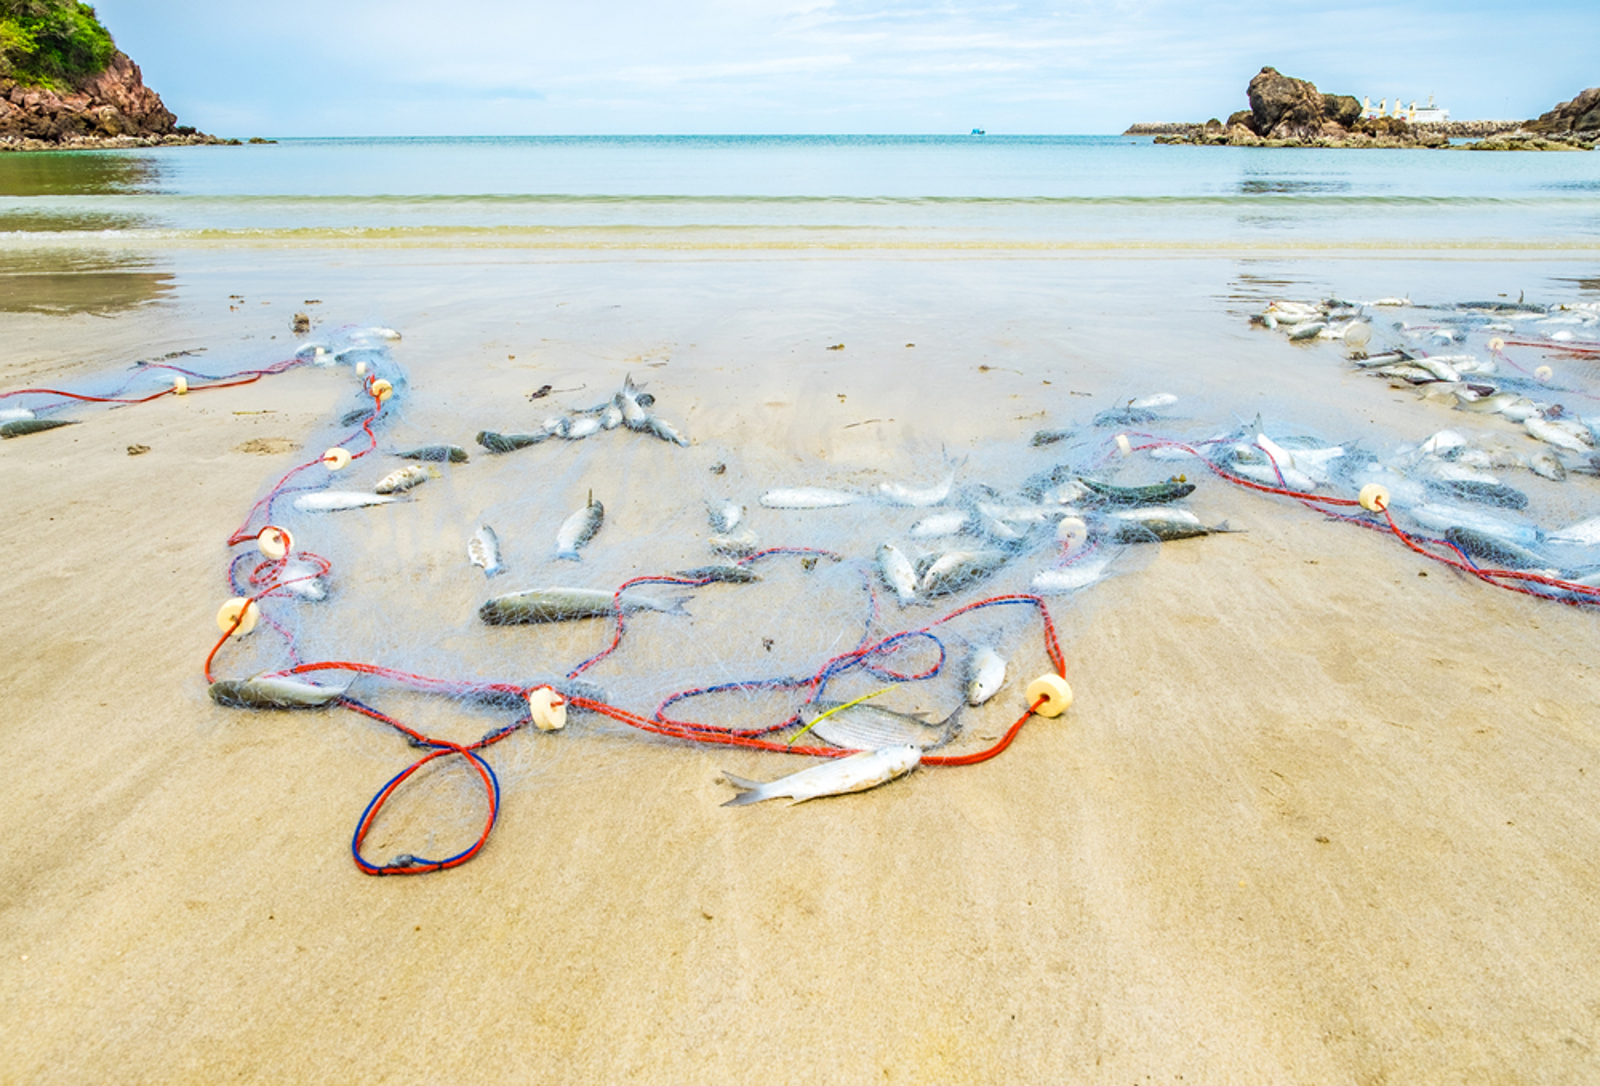 Ghost Fishing Gear Is Devastating Marine Life: How We're Working to End This